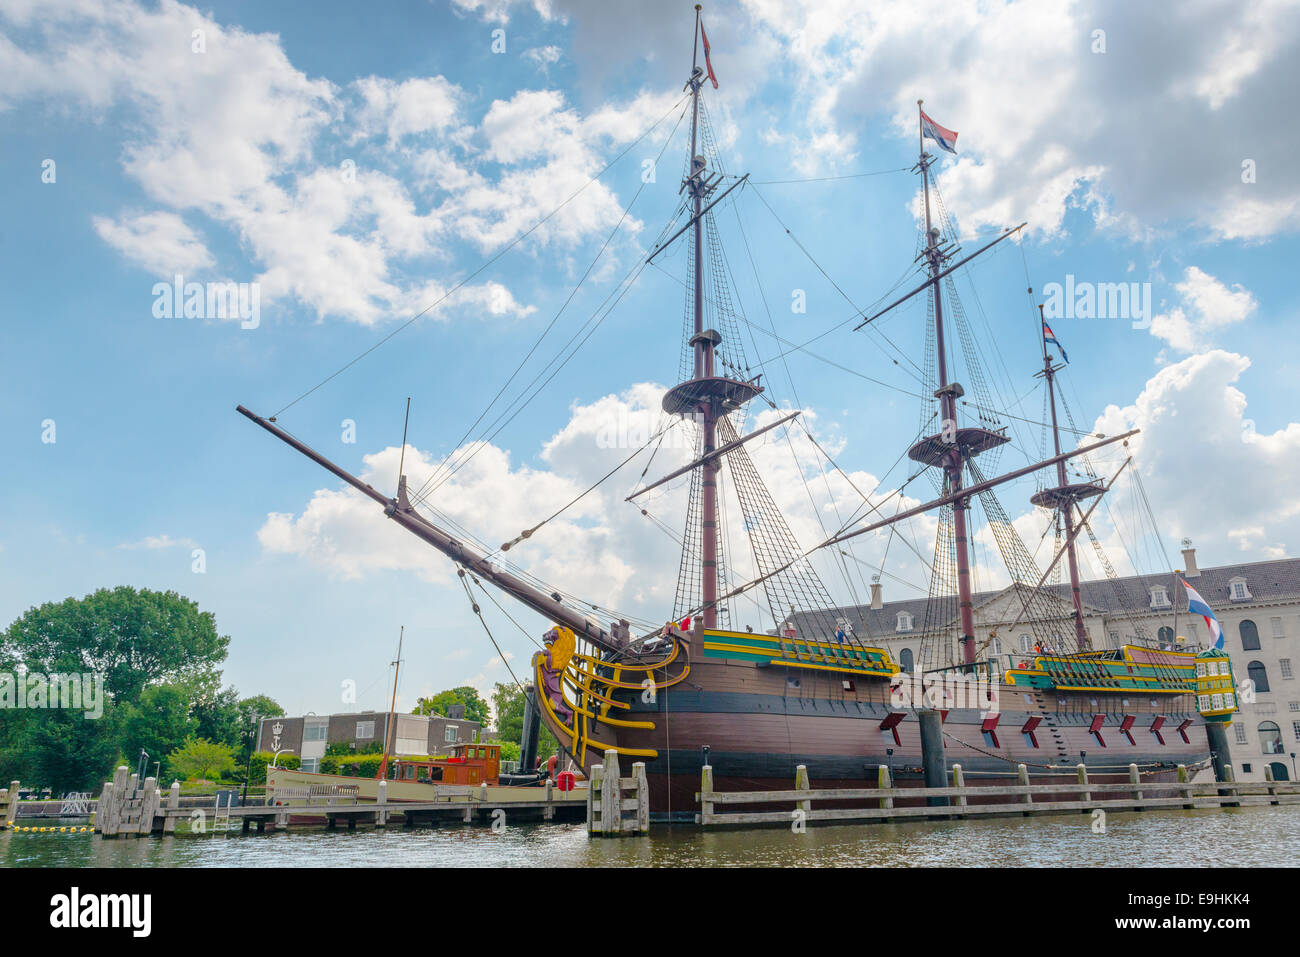 The Stad Amsterdam (City of Amsterdam) is a three-masted clipper, Amsterdam, Netherlands - Stock Image